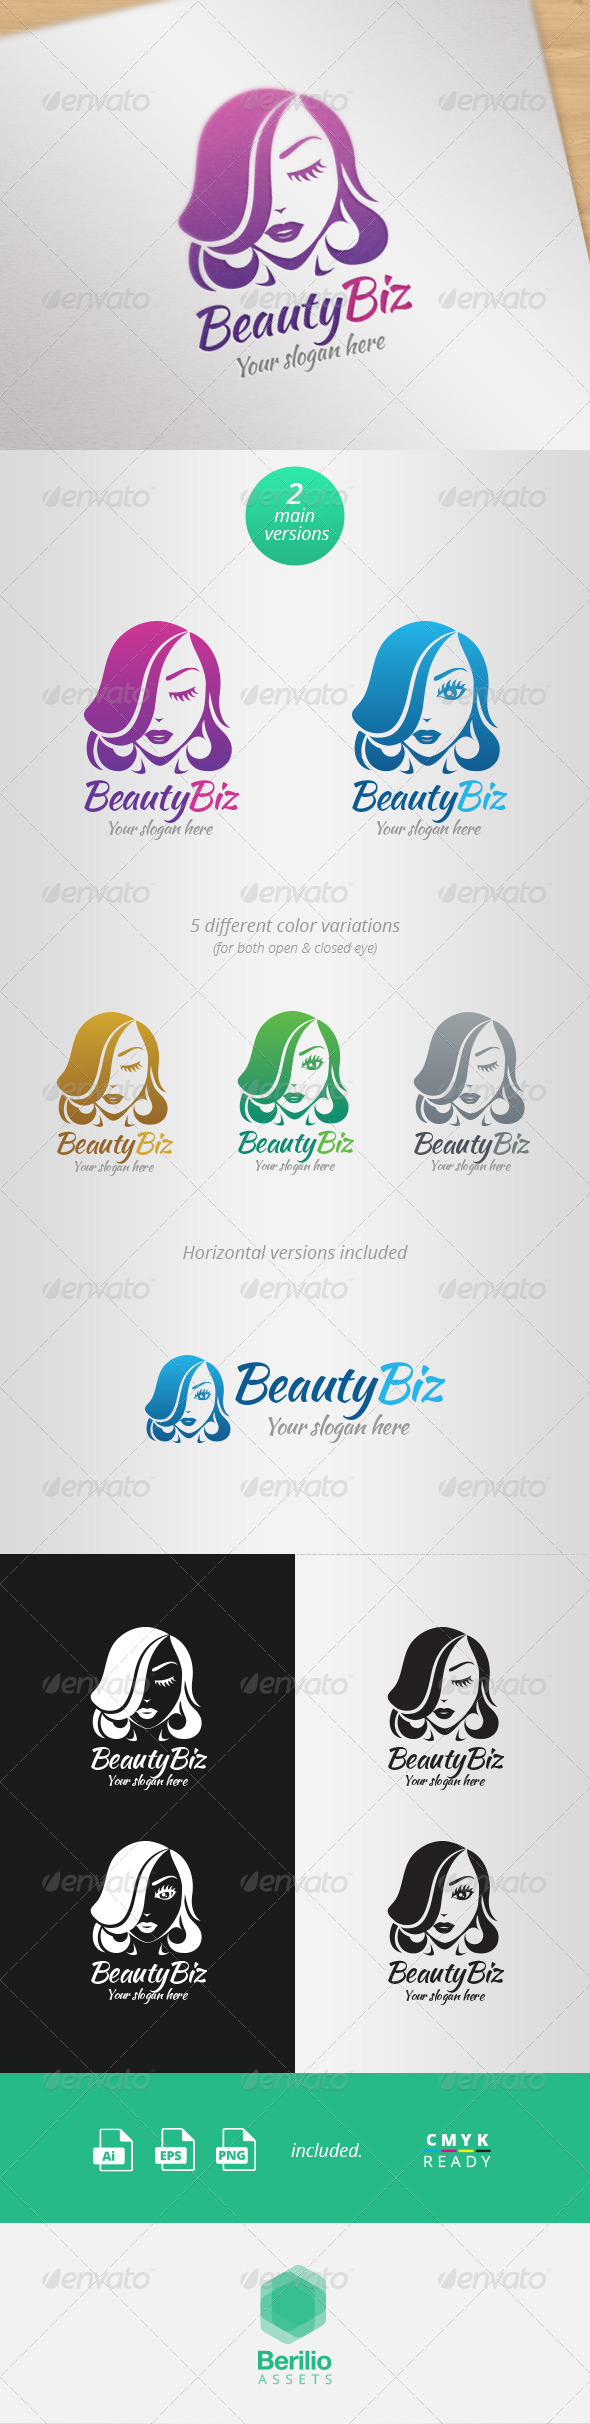 GraphicRiver Beauty Biz Logo Template 8042483